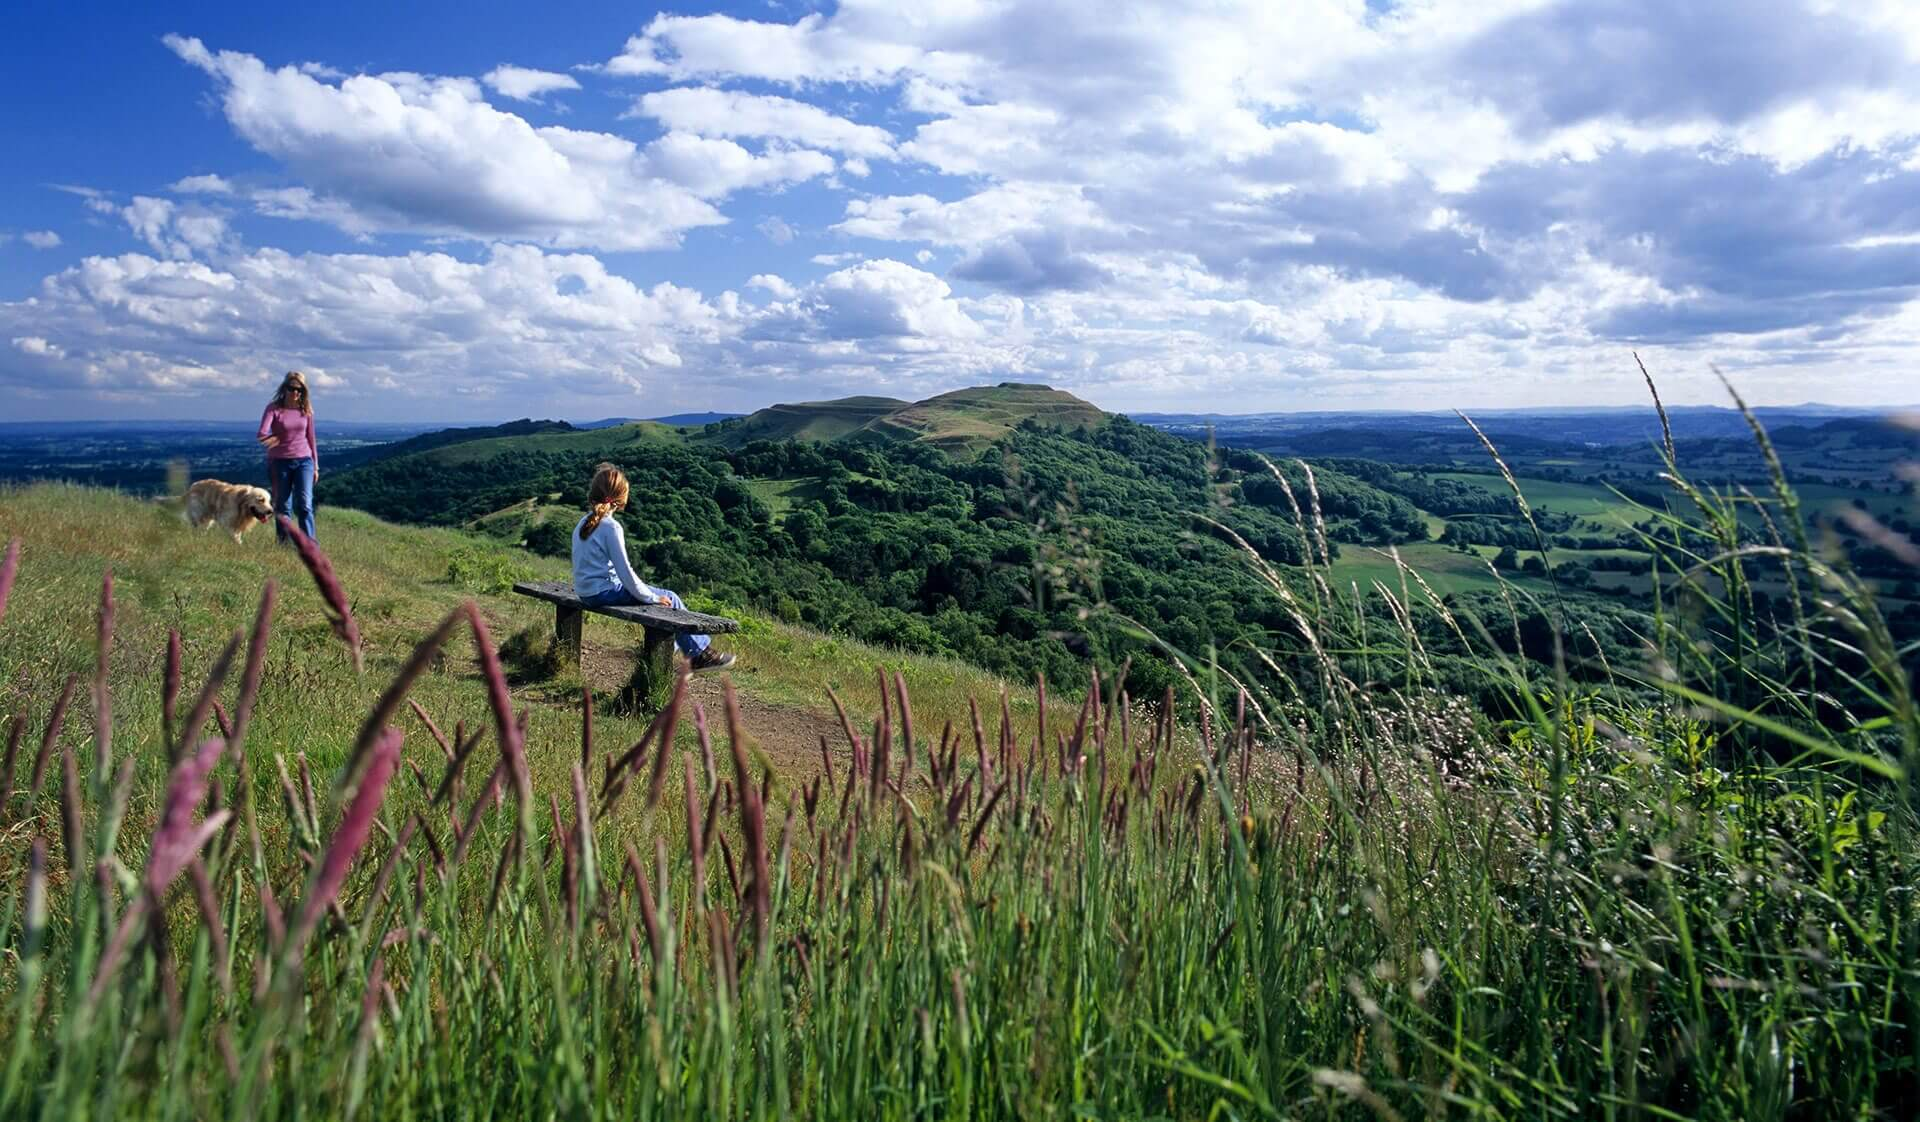 Girl sitting on a bench on the Malvern Hills